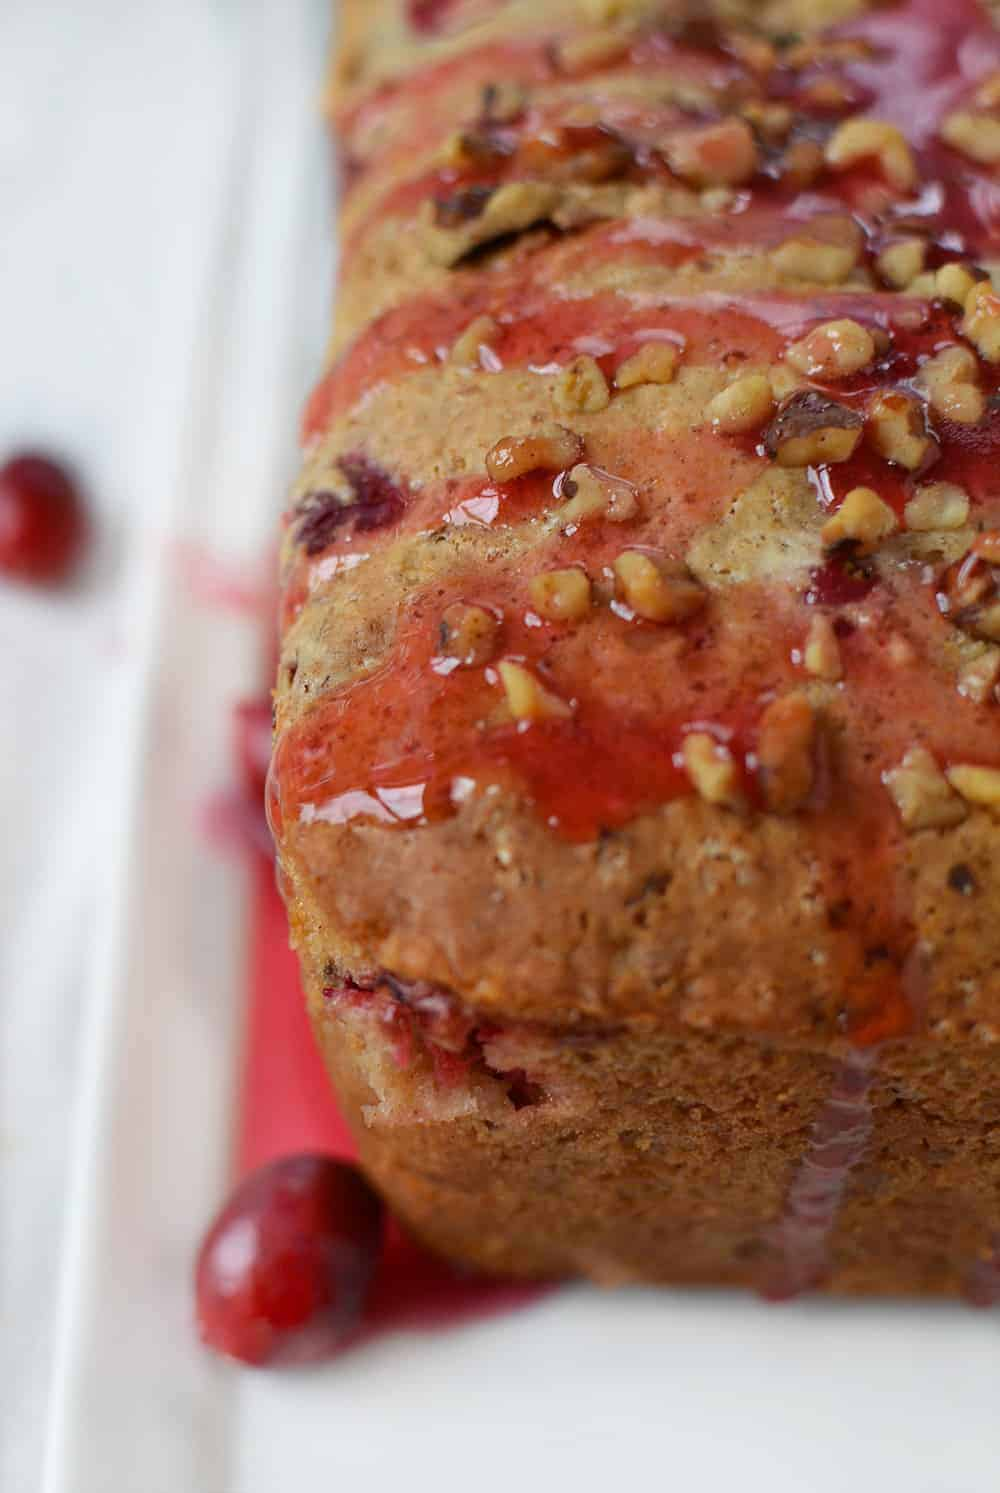 Vegan Cranberry Orange Ginger Bread! This skinny bread is loaded with flavors of fall, and easily made vegan! Serve as is or with a luscious cranberry drizzle. | www.delishknowledge.com